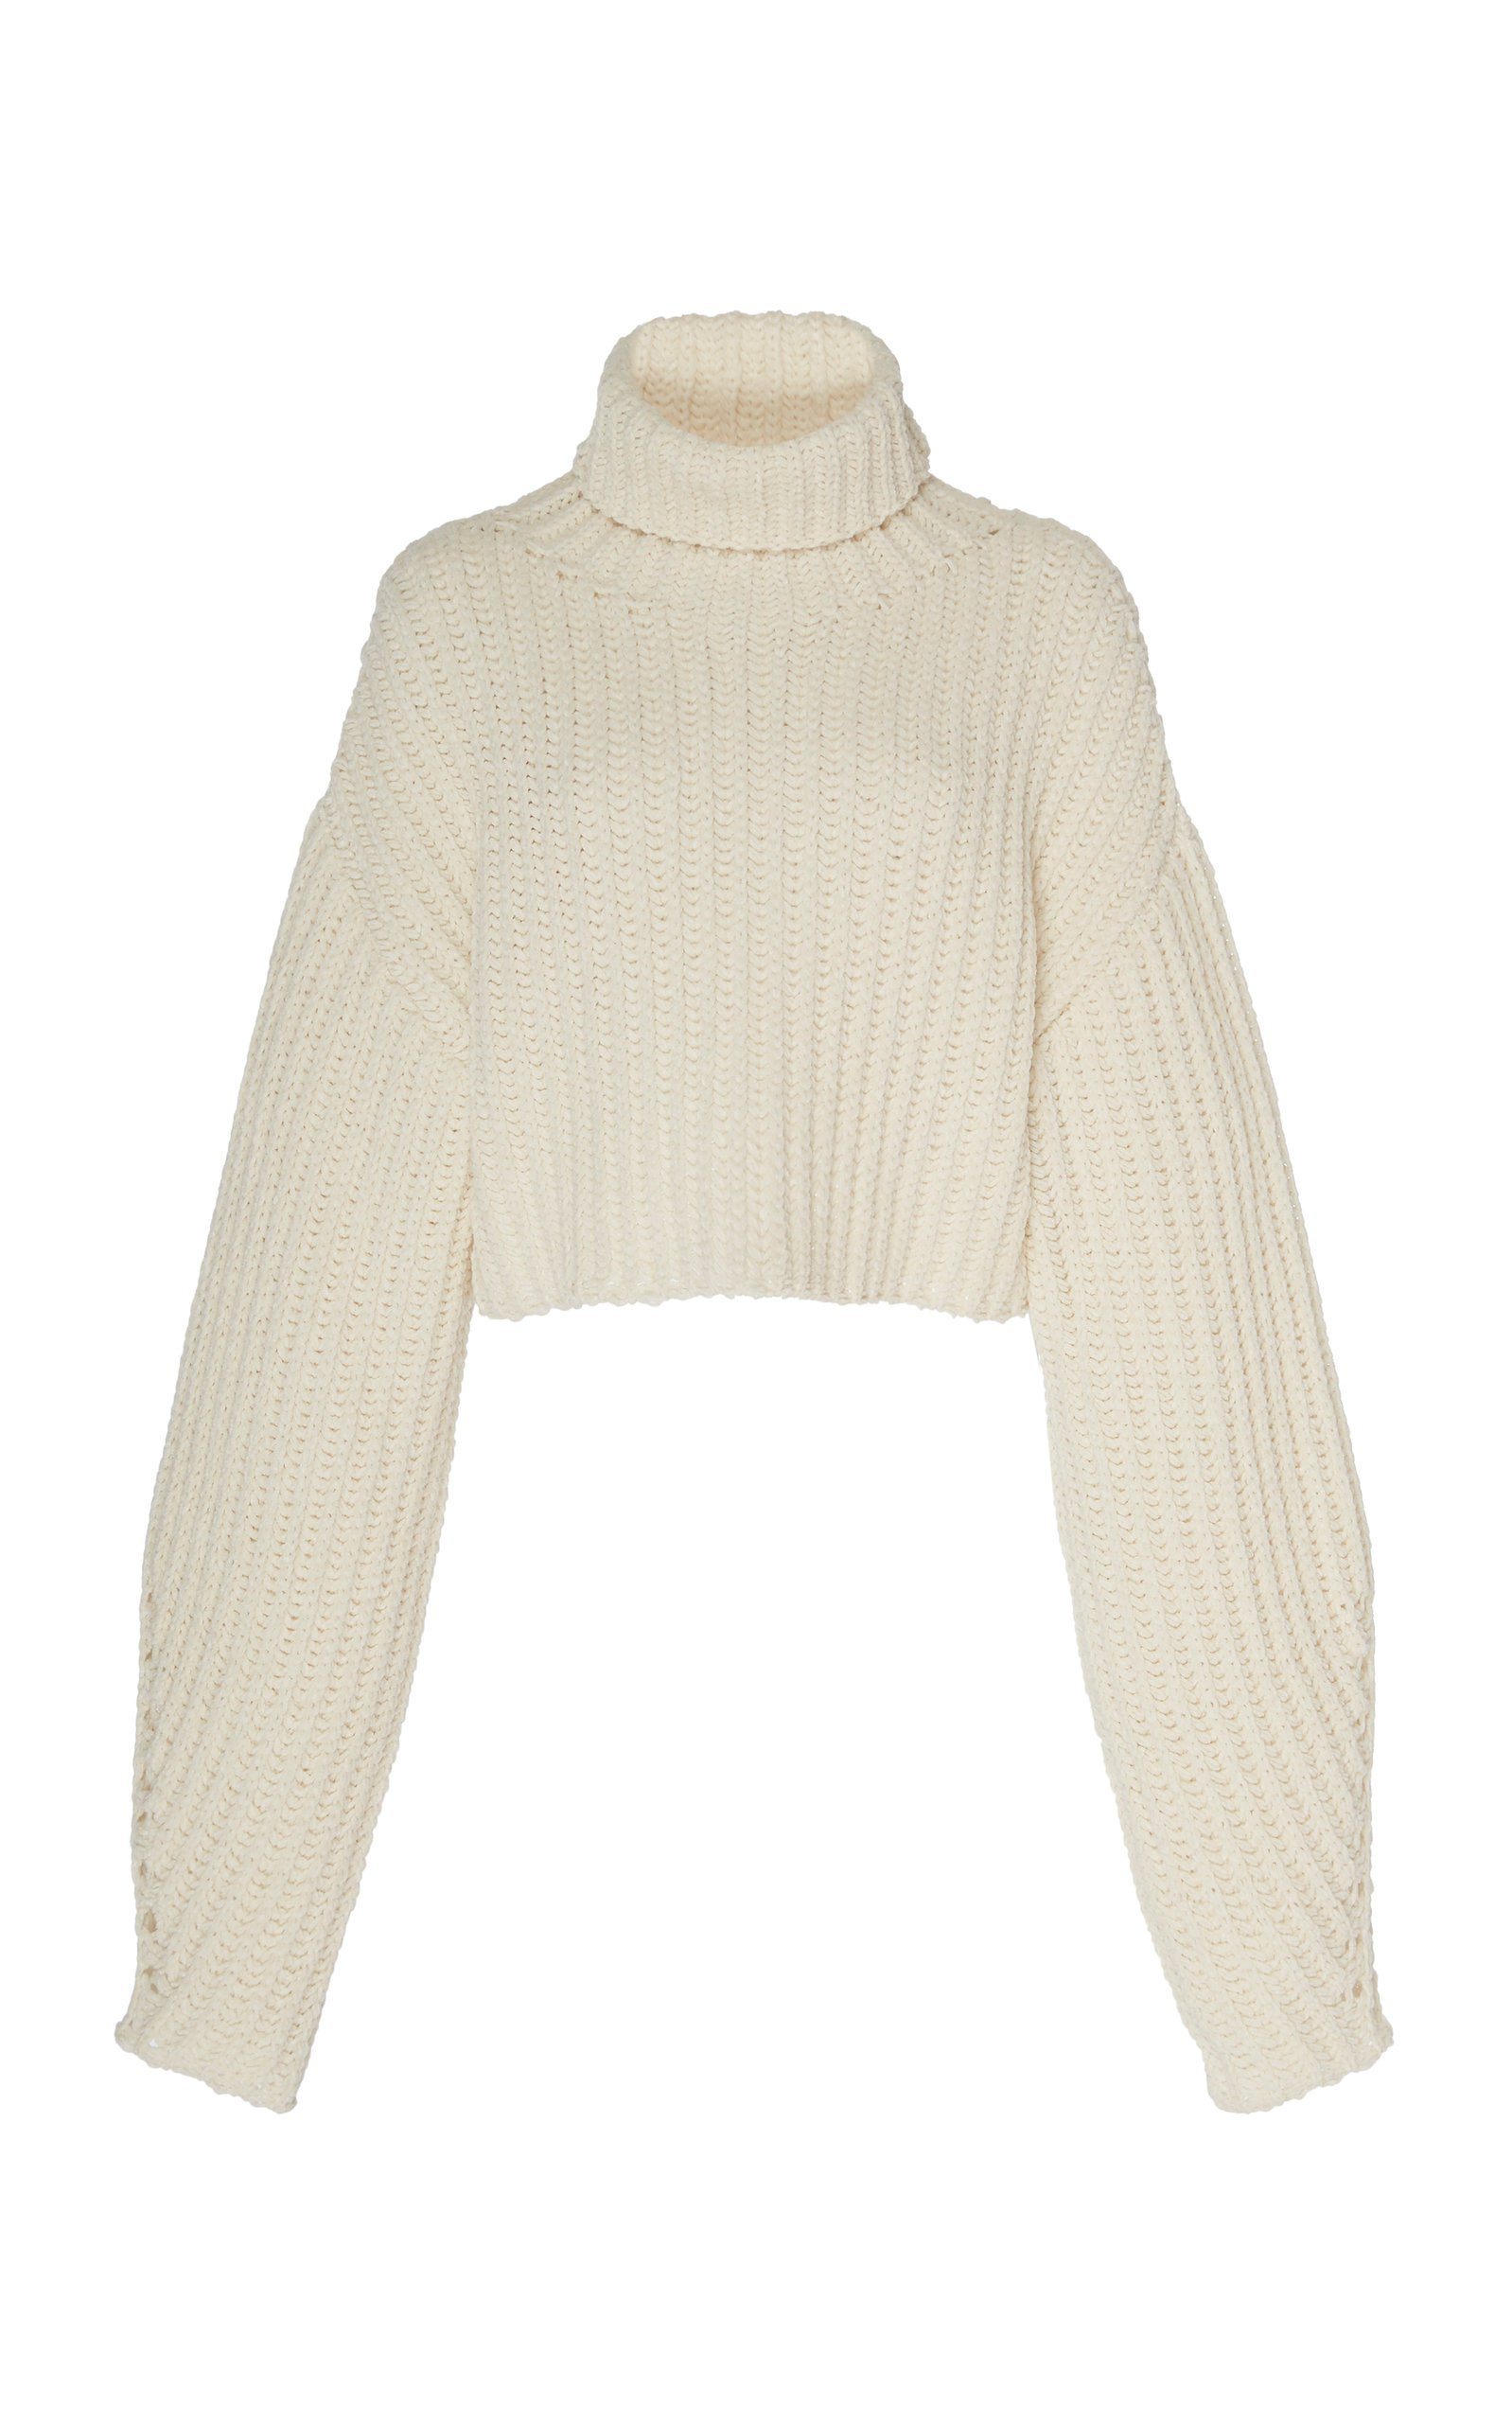 Sally LaPointe Silk Cashmere Cord Cropped High Neck Sweater